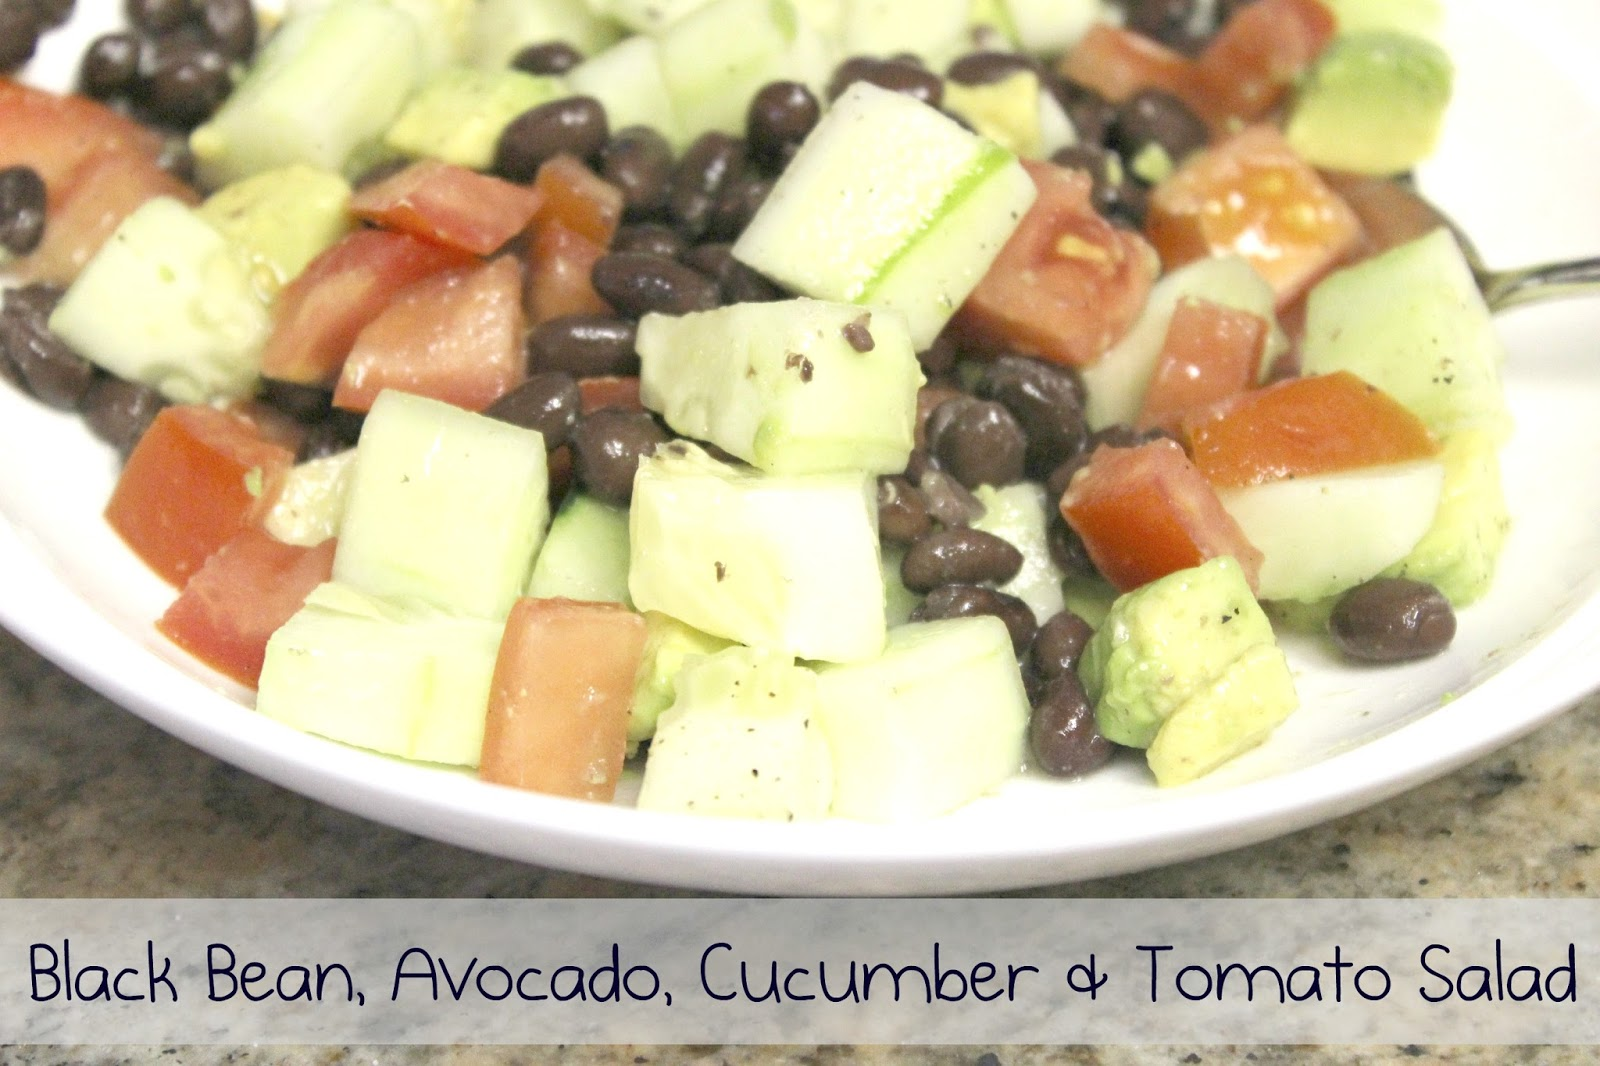 simply made with love: Black Bean, Avocado, Cucumber and Tomato Salad